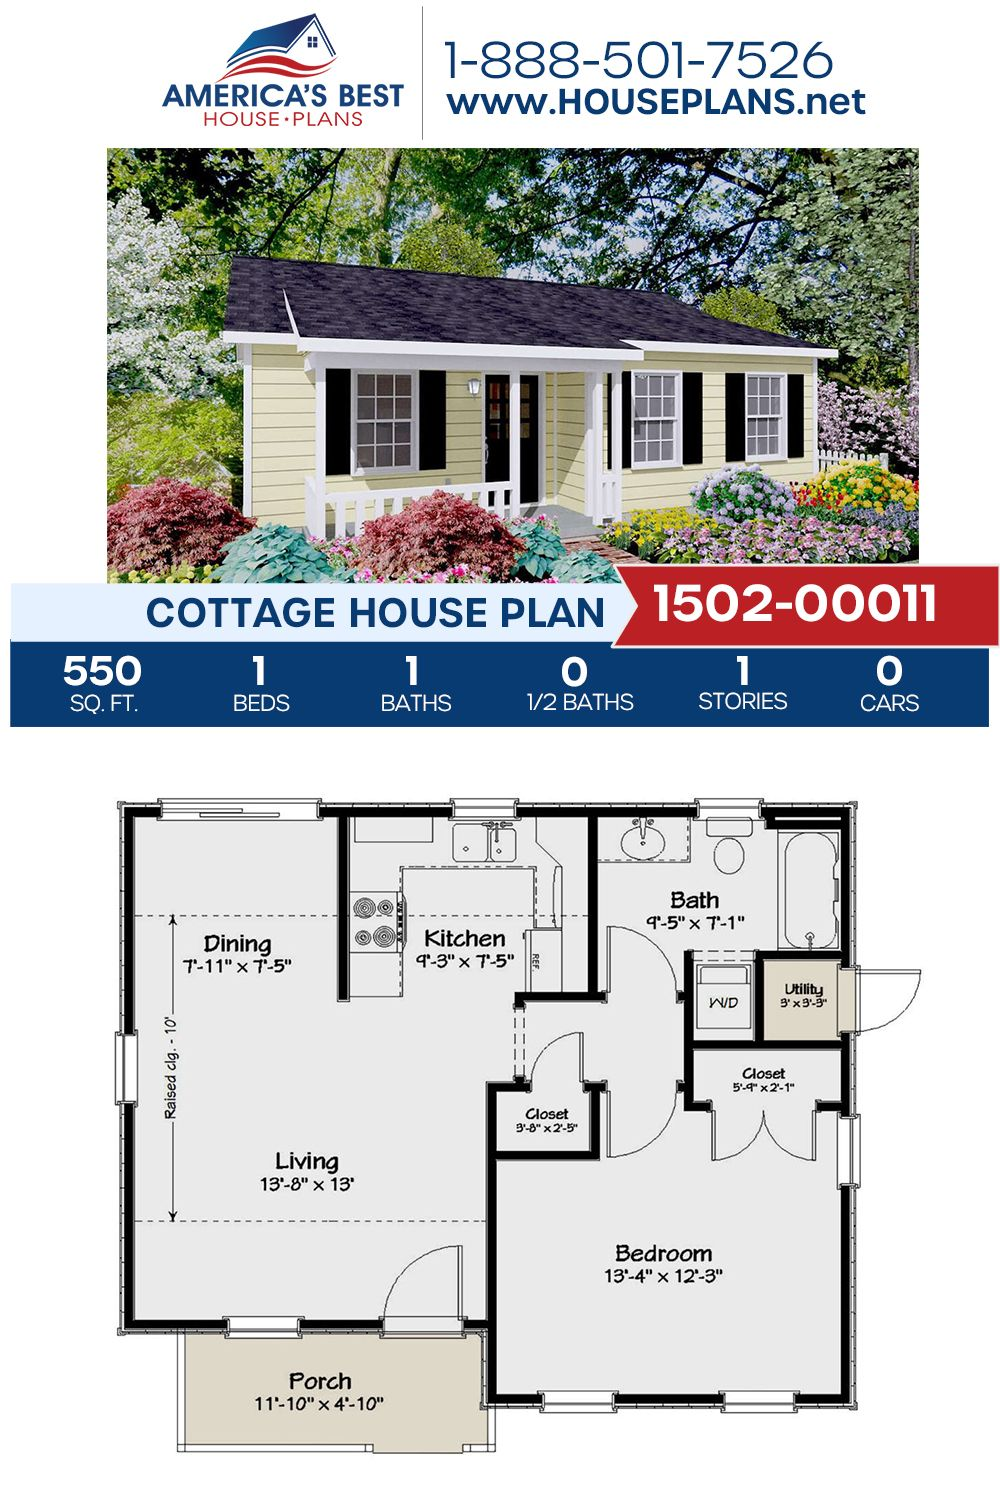 House Plan 1502 00011 Cottage Plan 550 Square Feet 1 Bedroom 1 Bathroom Cottage Plan Guest House Plans Small Cottage House Plans